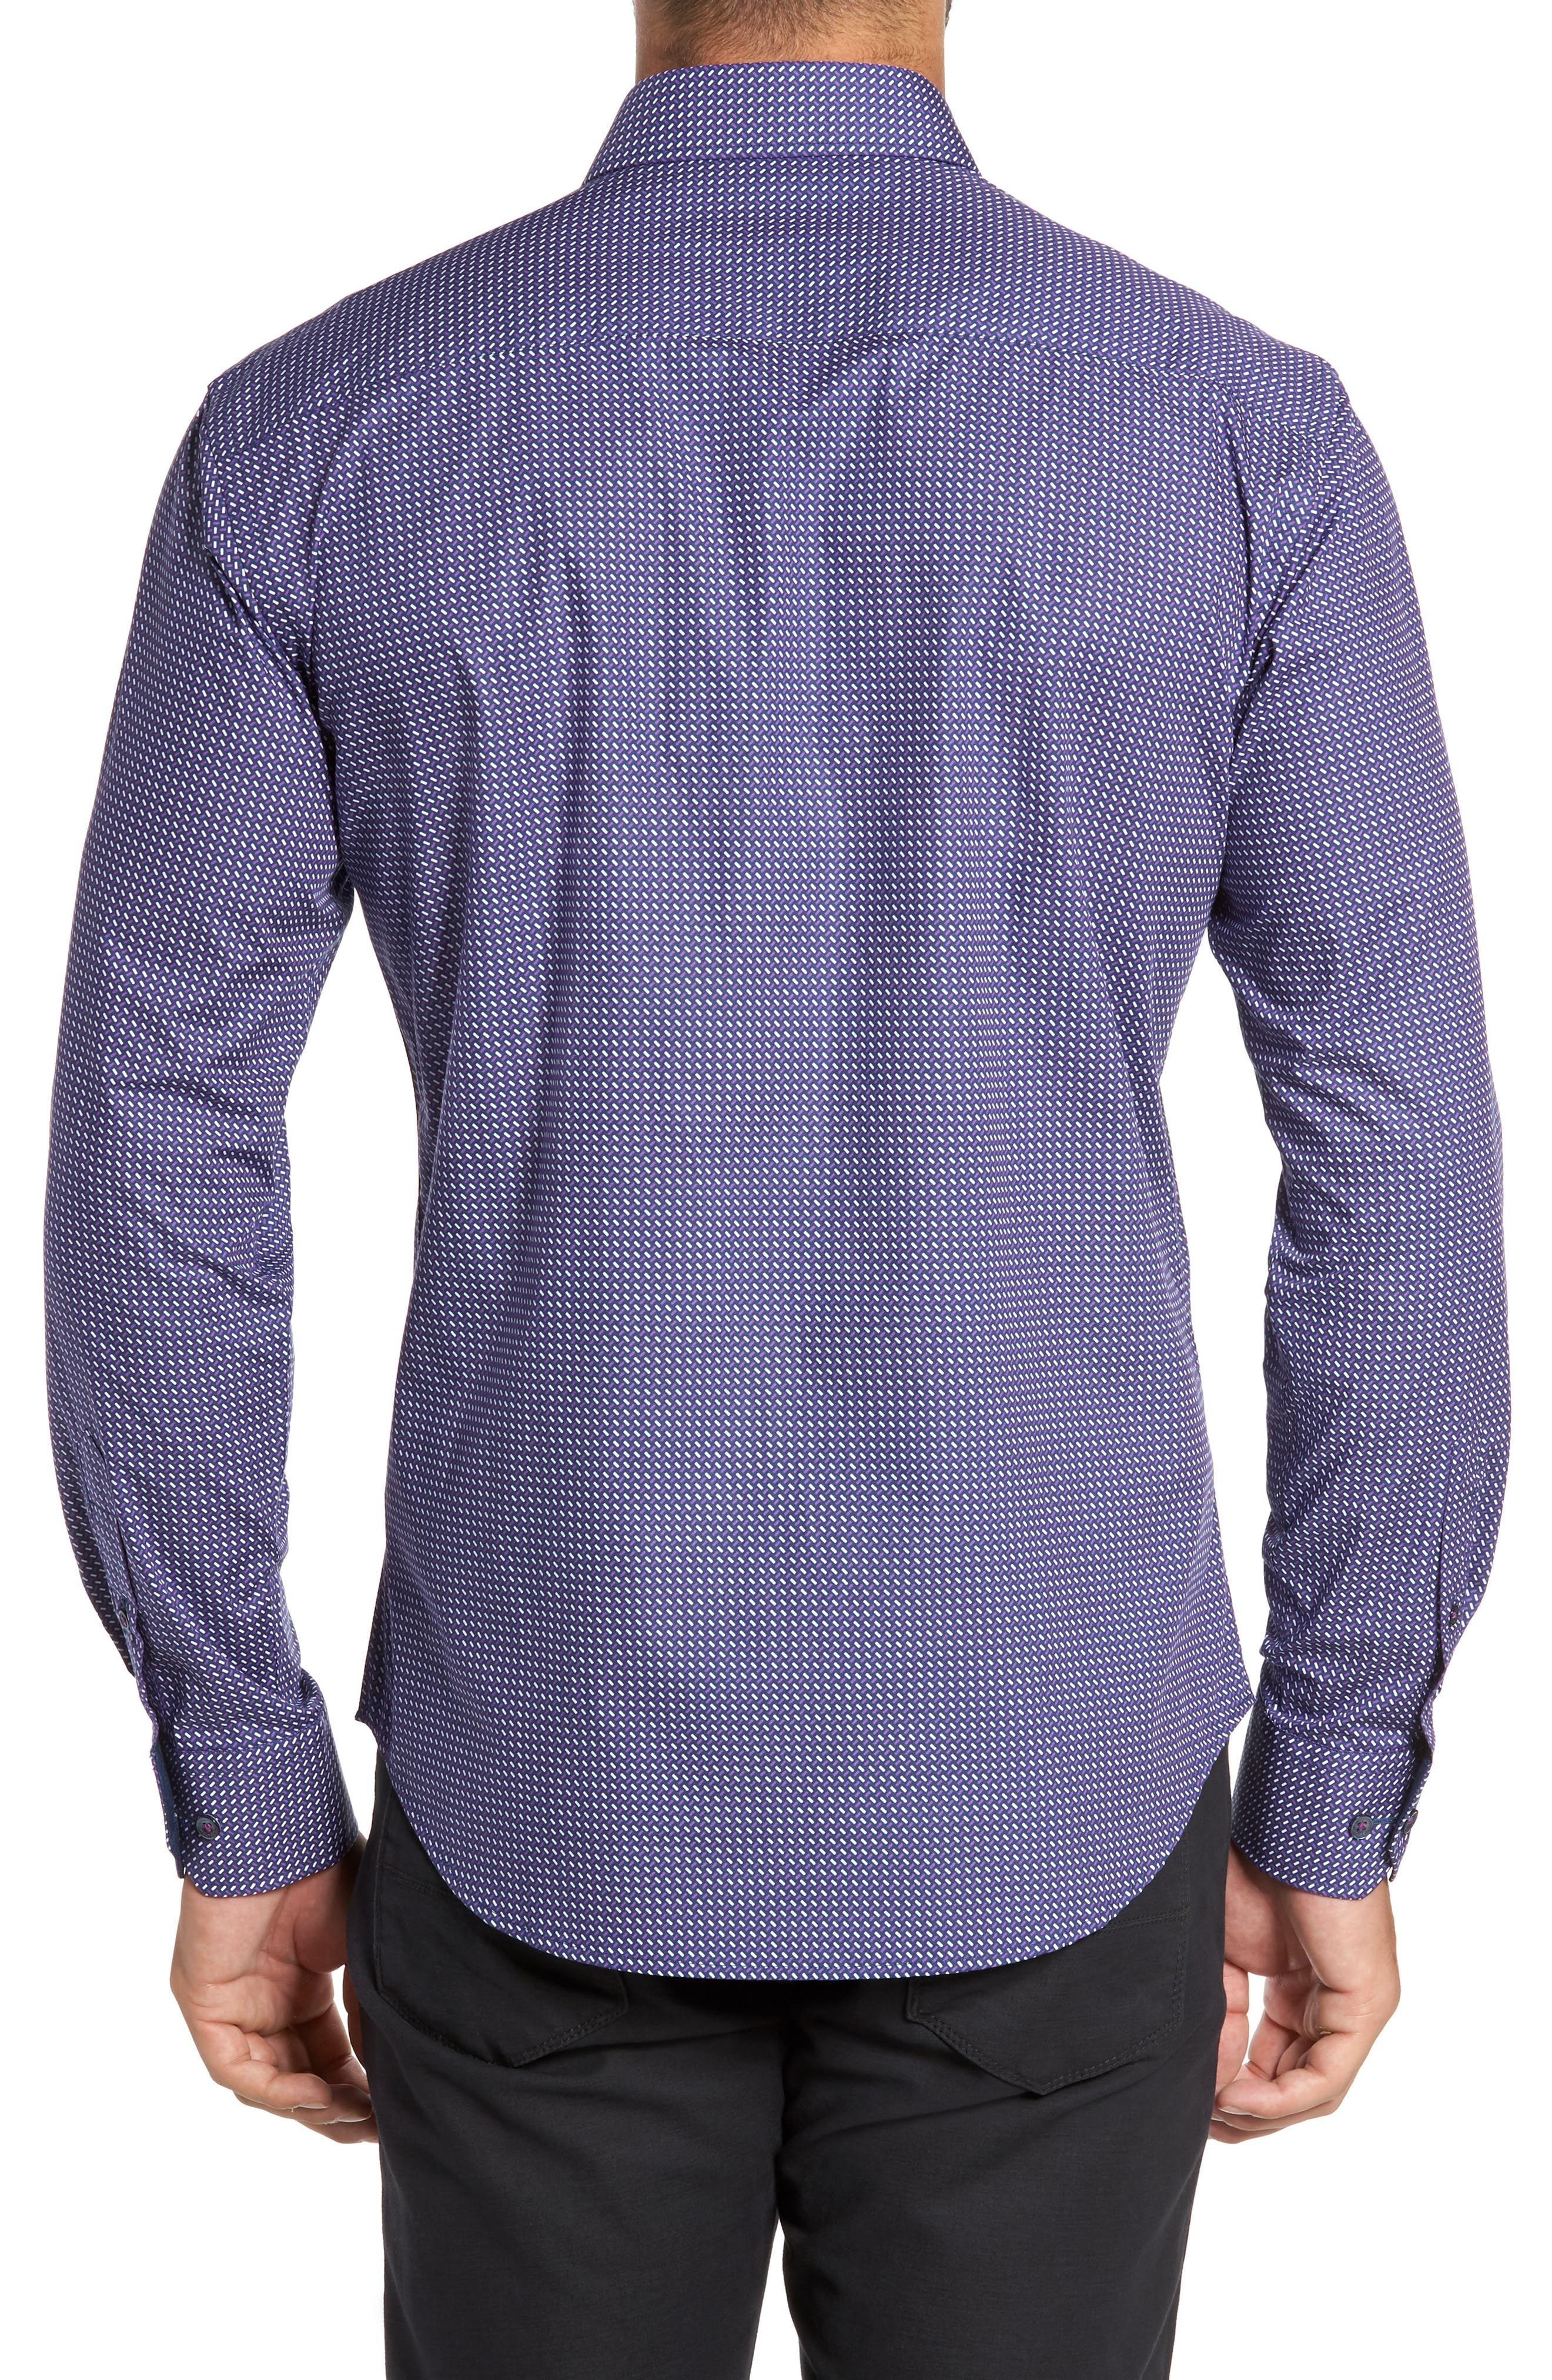 Alternate Image 2  - Bugatchi Trim Fit Weave Print Sport Shirt